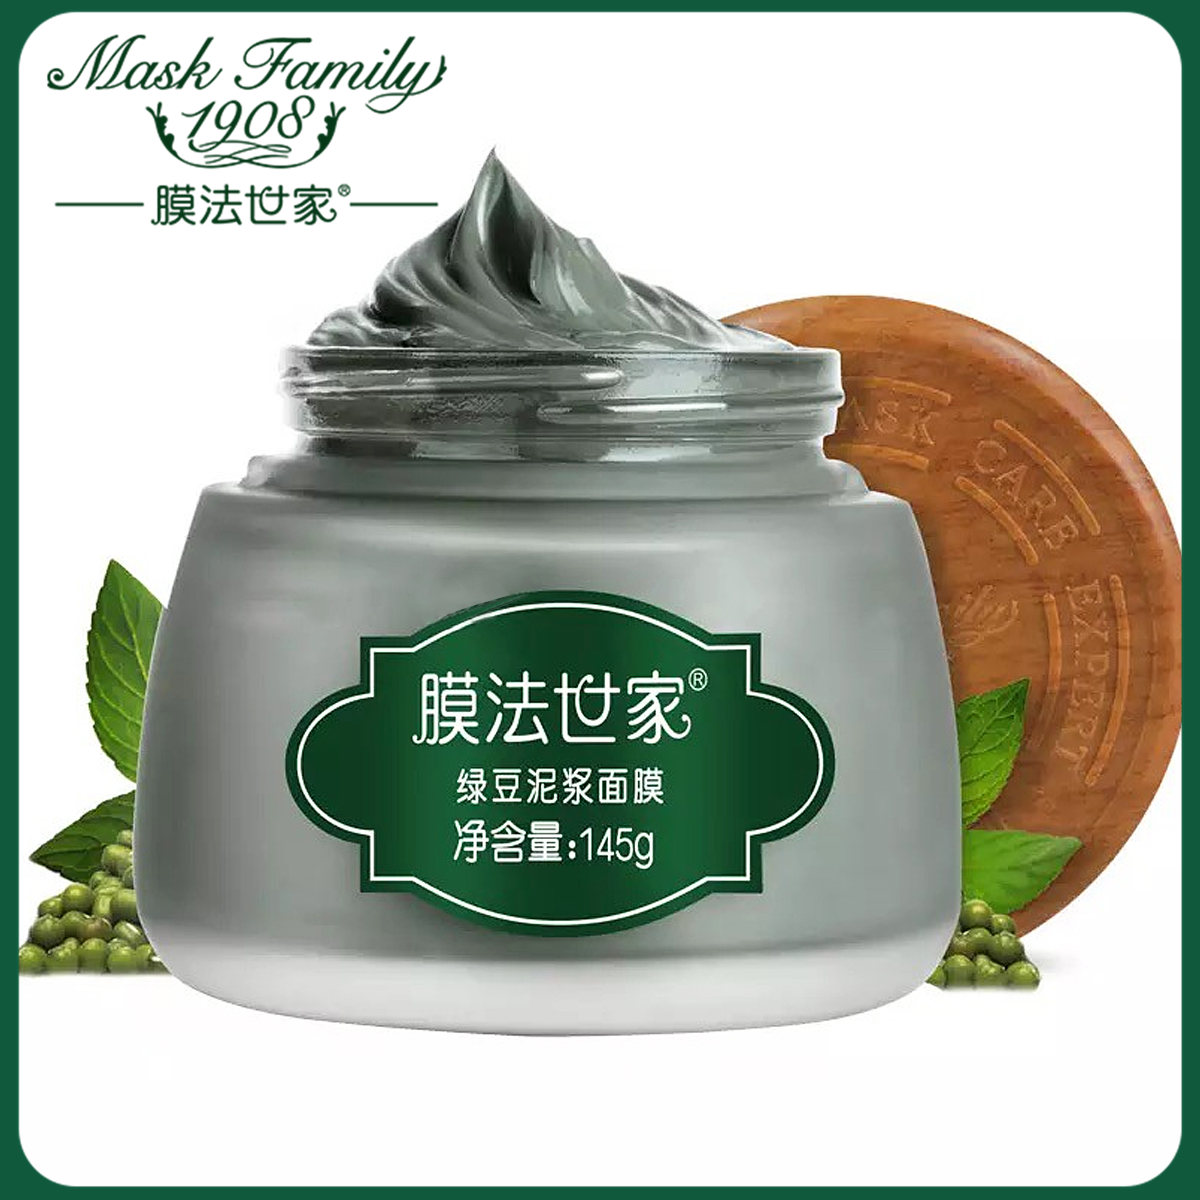 Mask Family Natural Nourishment Mung Bean Mud Face Mask Whitening Cleansing Moisturizing Refreshing Peeling Clay Mask Skin Care